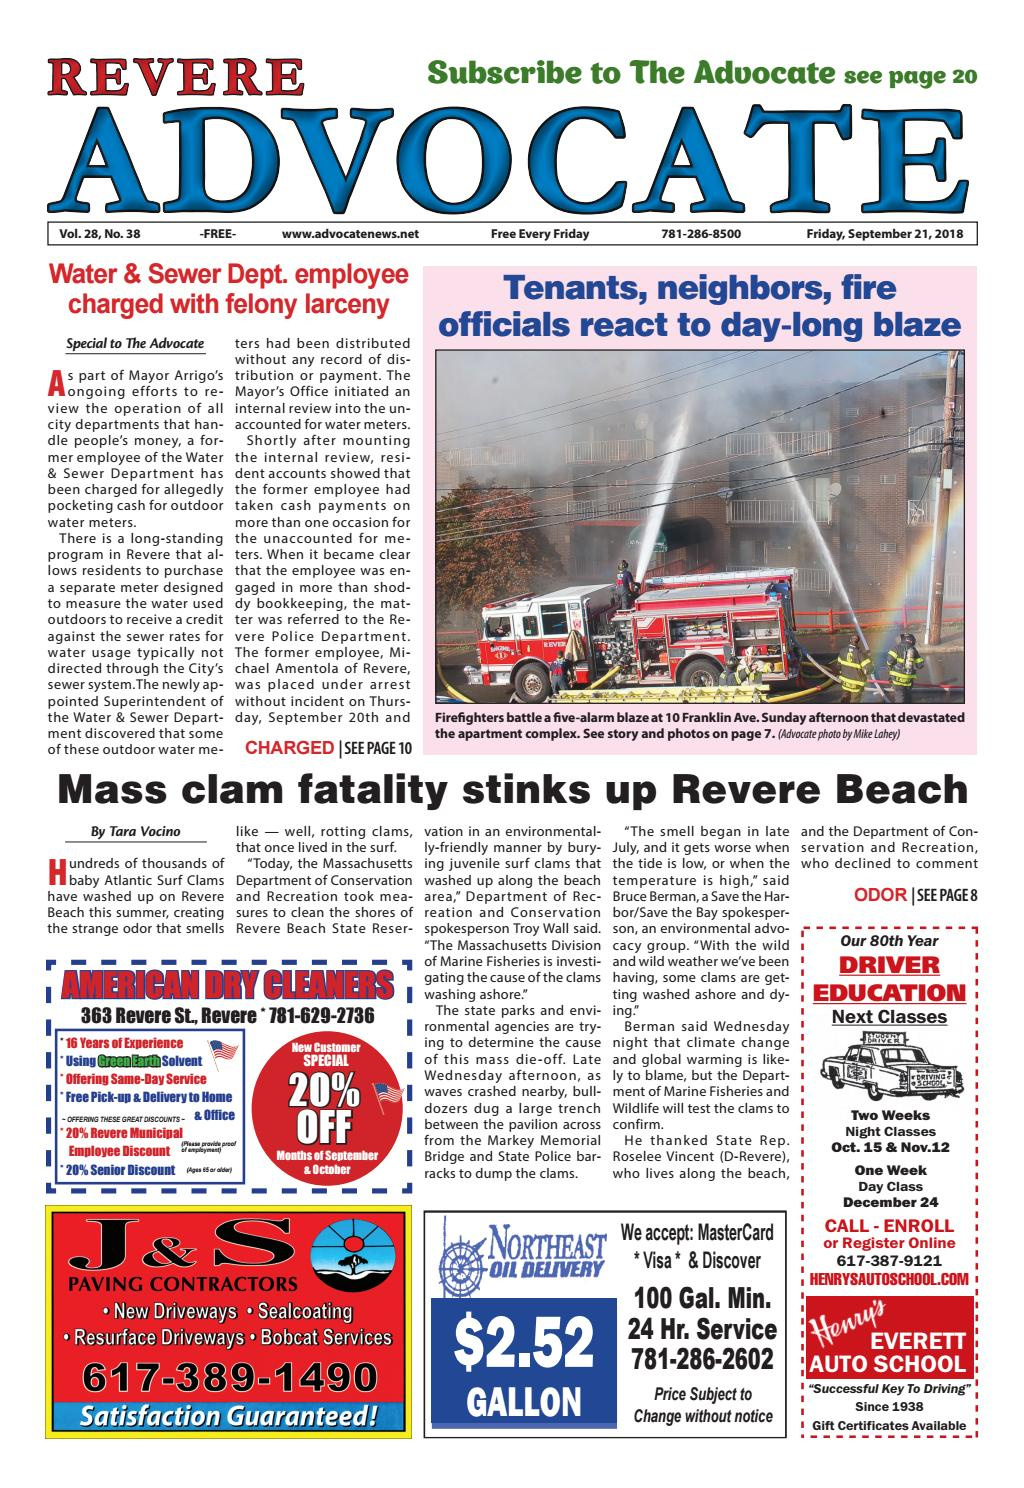 The Revere Advocate Friday September 21 2018 By Mike Kurov Issuu Les Catino New York Queens Satchel Black